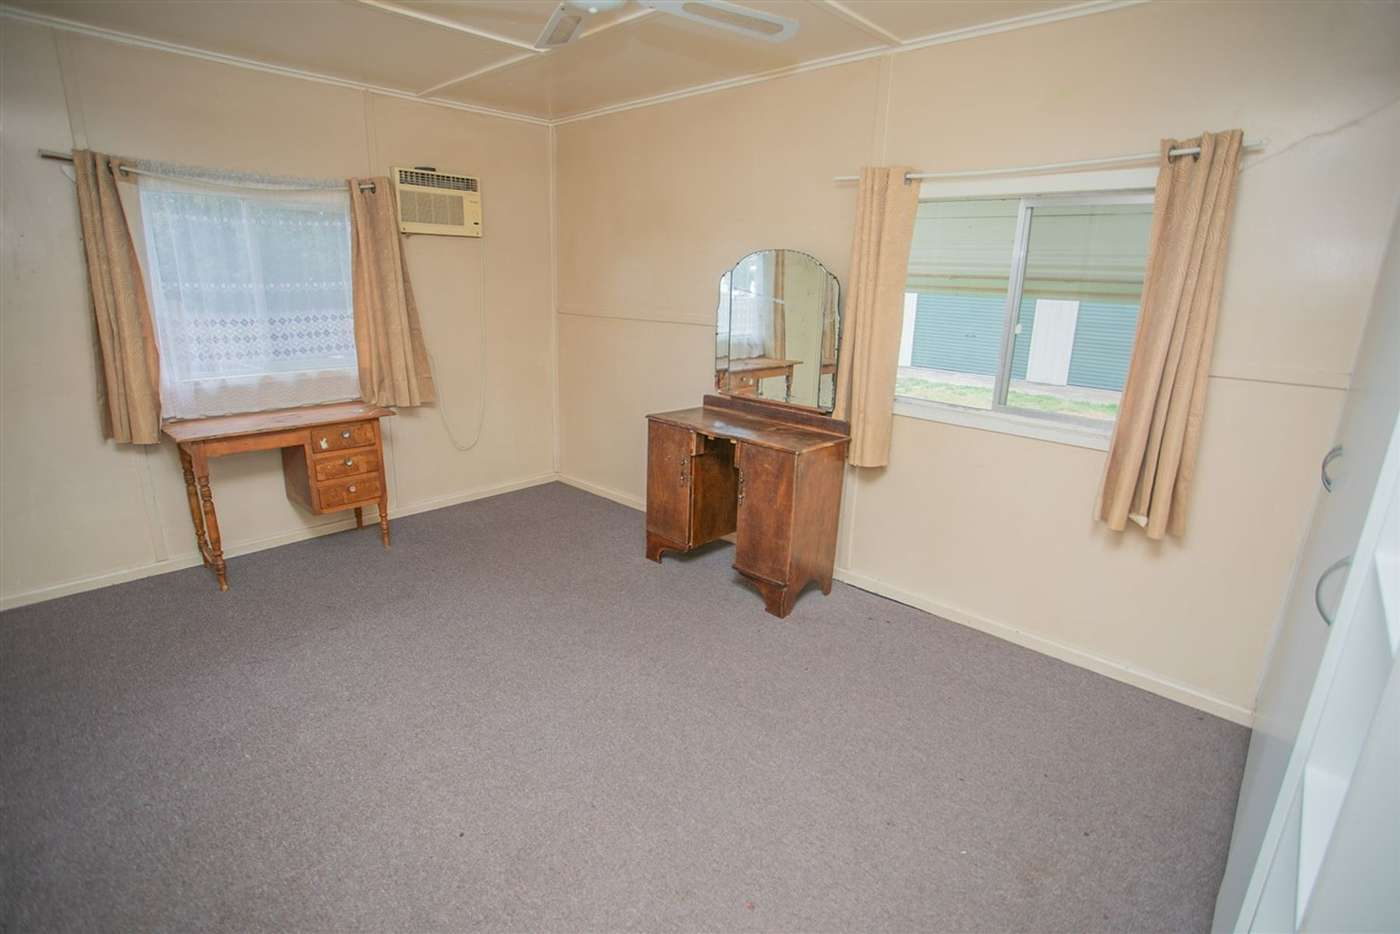 Seventh view of Homely house listing, 8 Birkett Street, Chinchilla QLD 4413